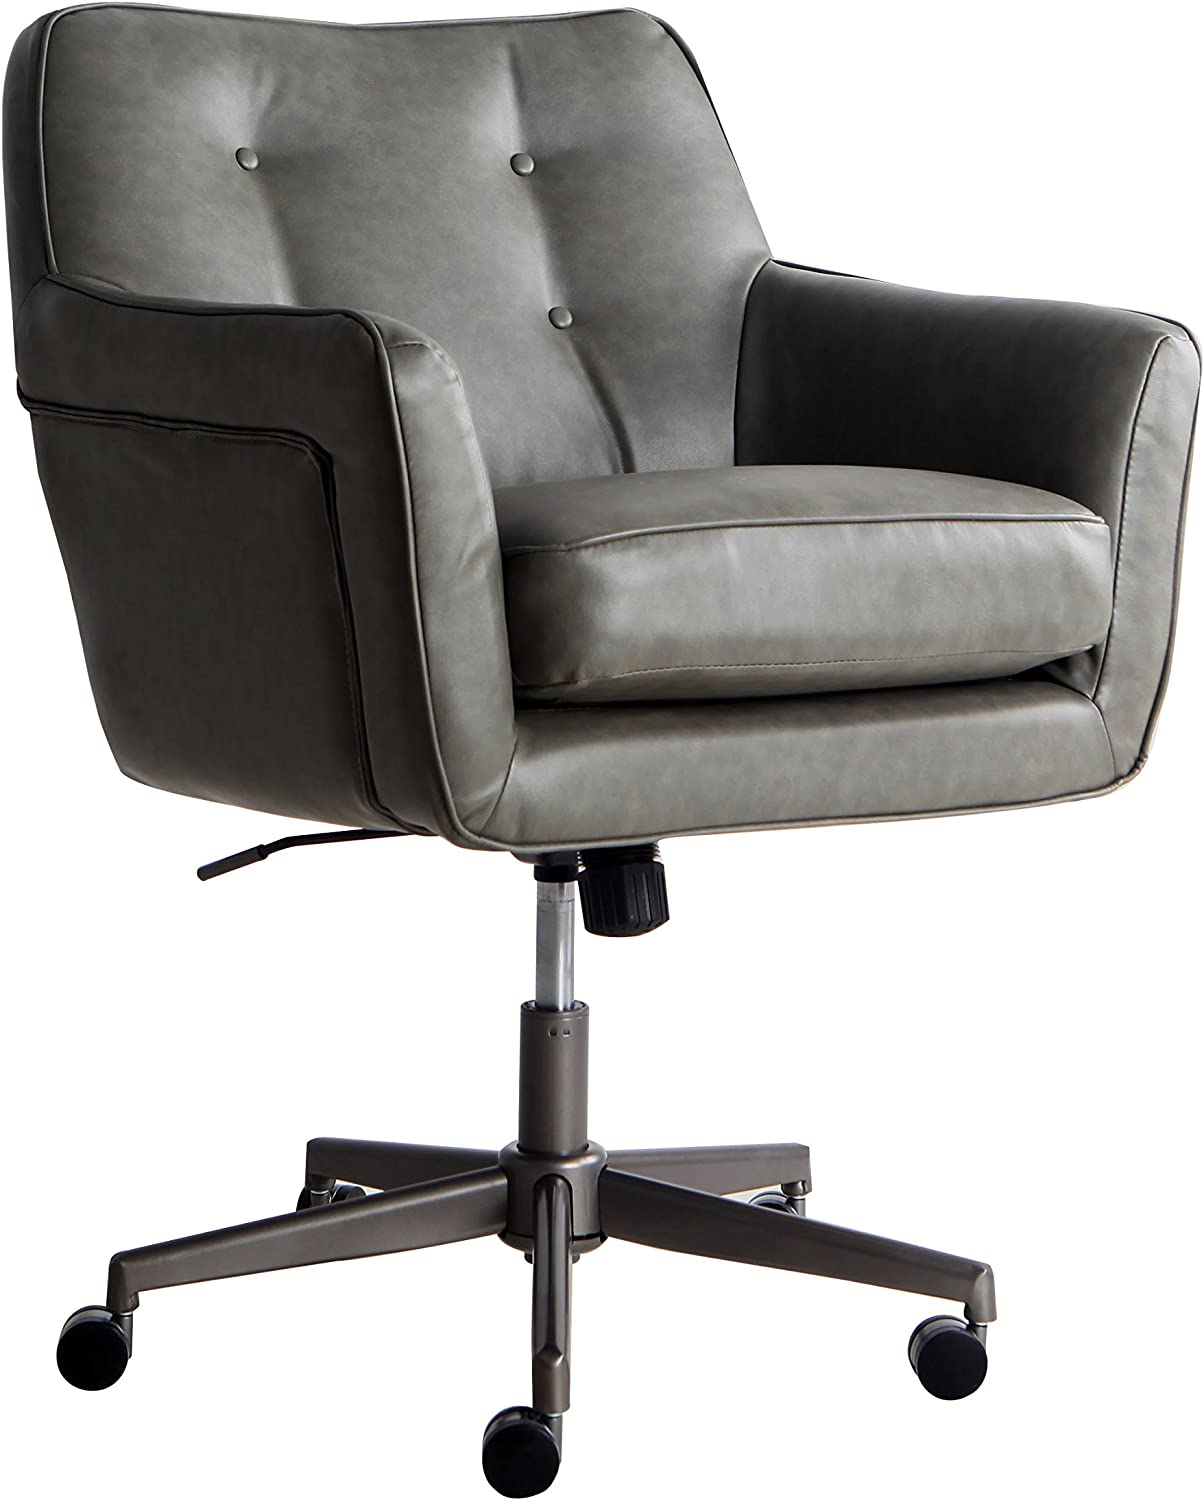 Serta Style Ashland Home Office Chair, Gathering Gray Bonded Leather